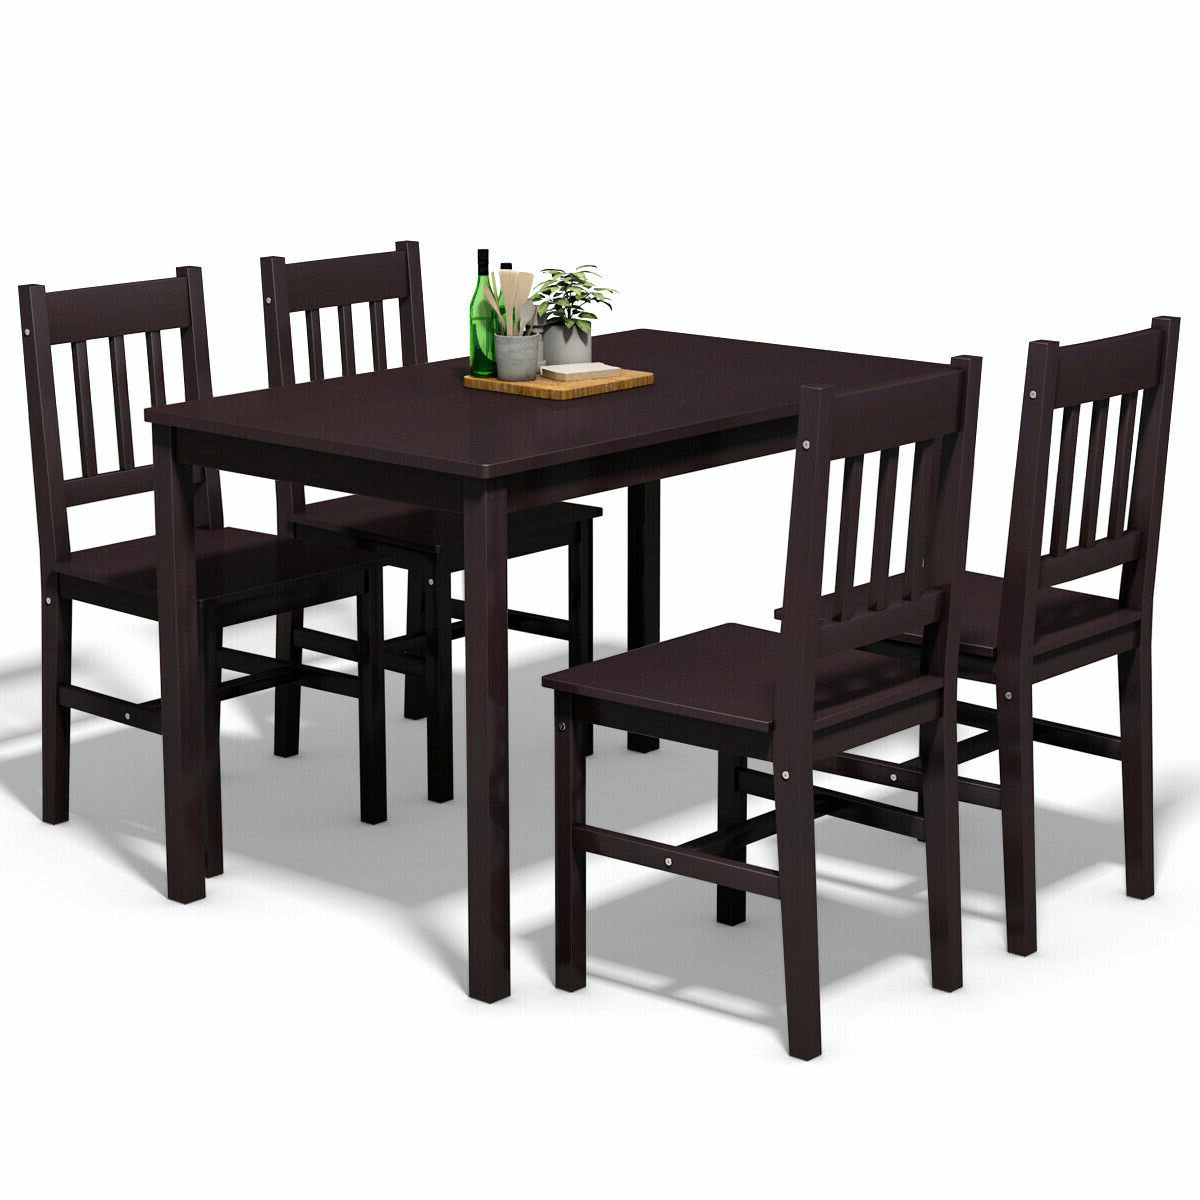 Miskell 5 Piece Dining Sets With Regard To Recent Winston Porter Sundberg 5 Piece Solid Wood Dining Set & Reviews (View 6 of 25)